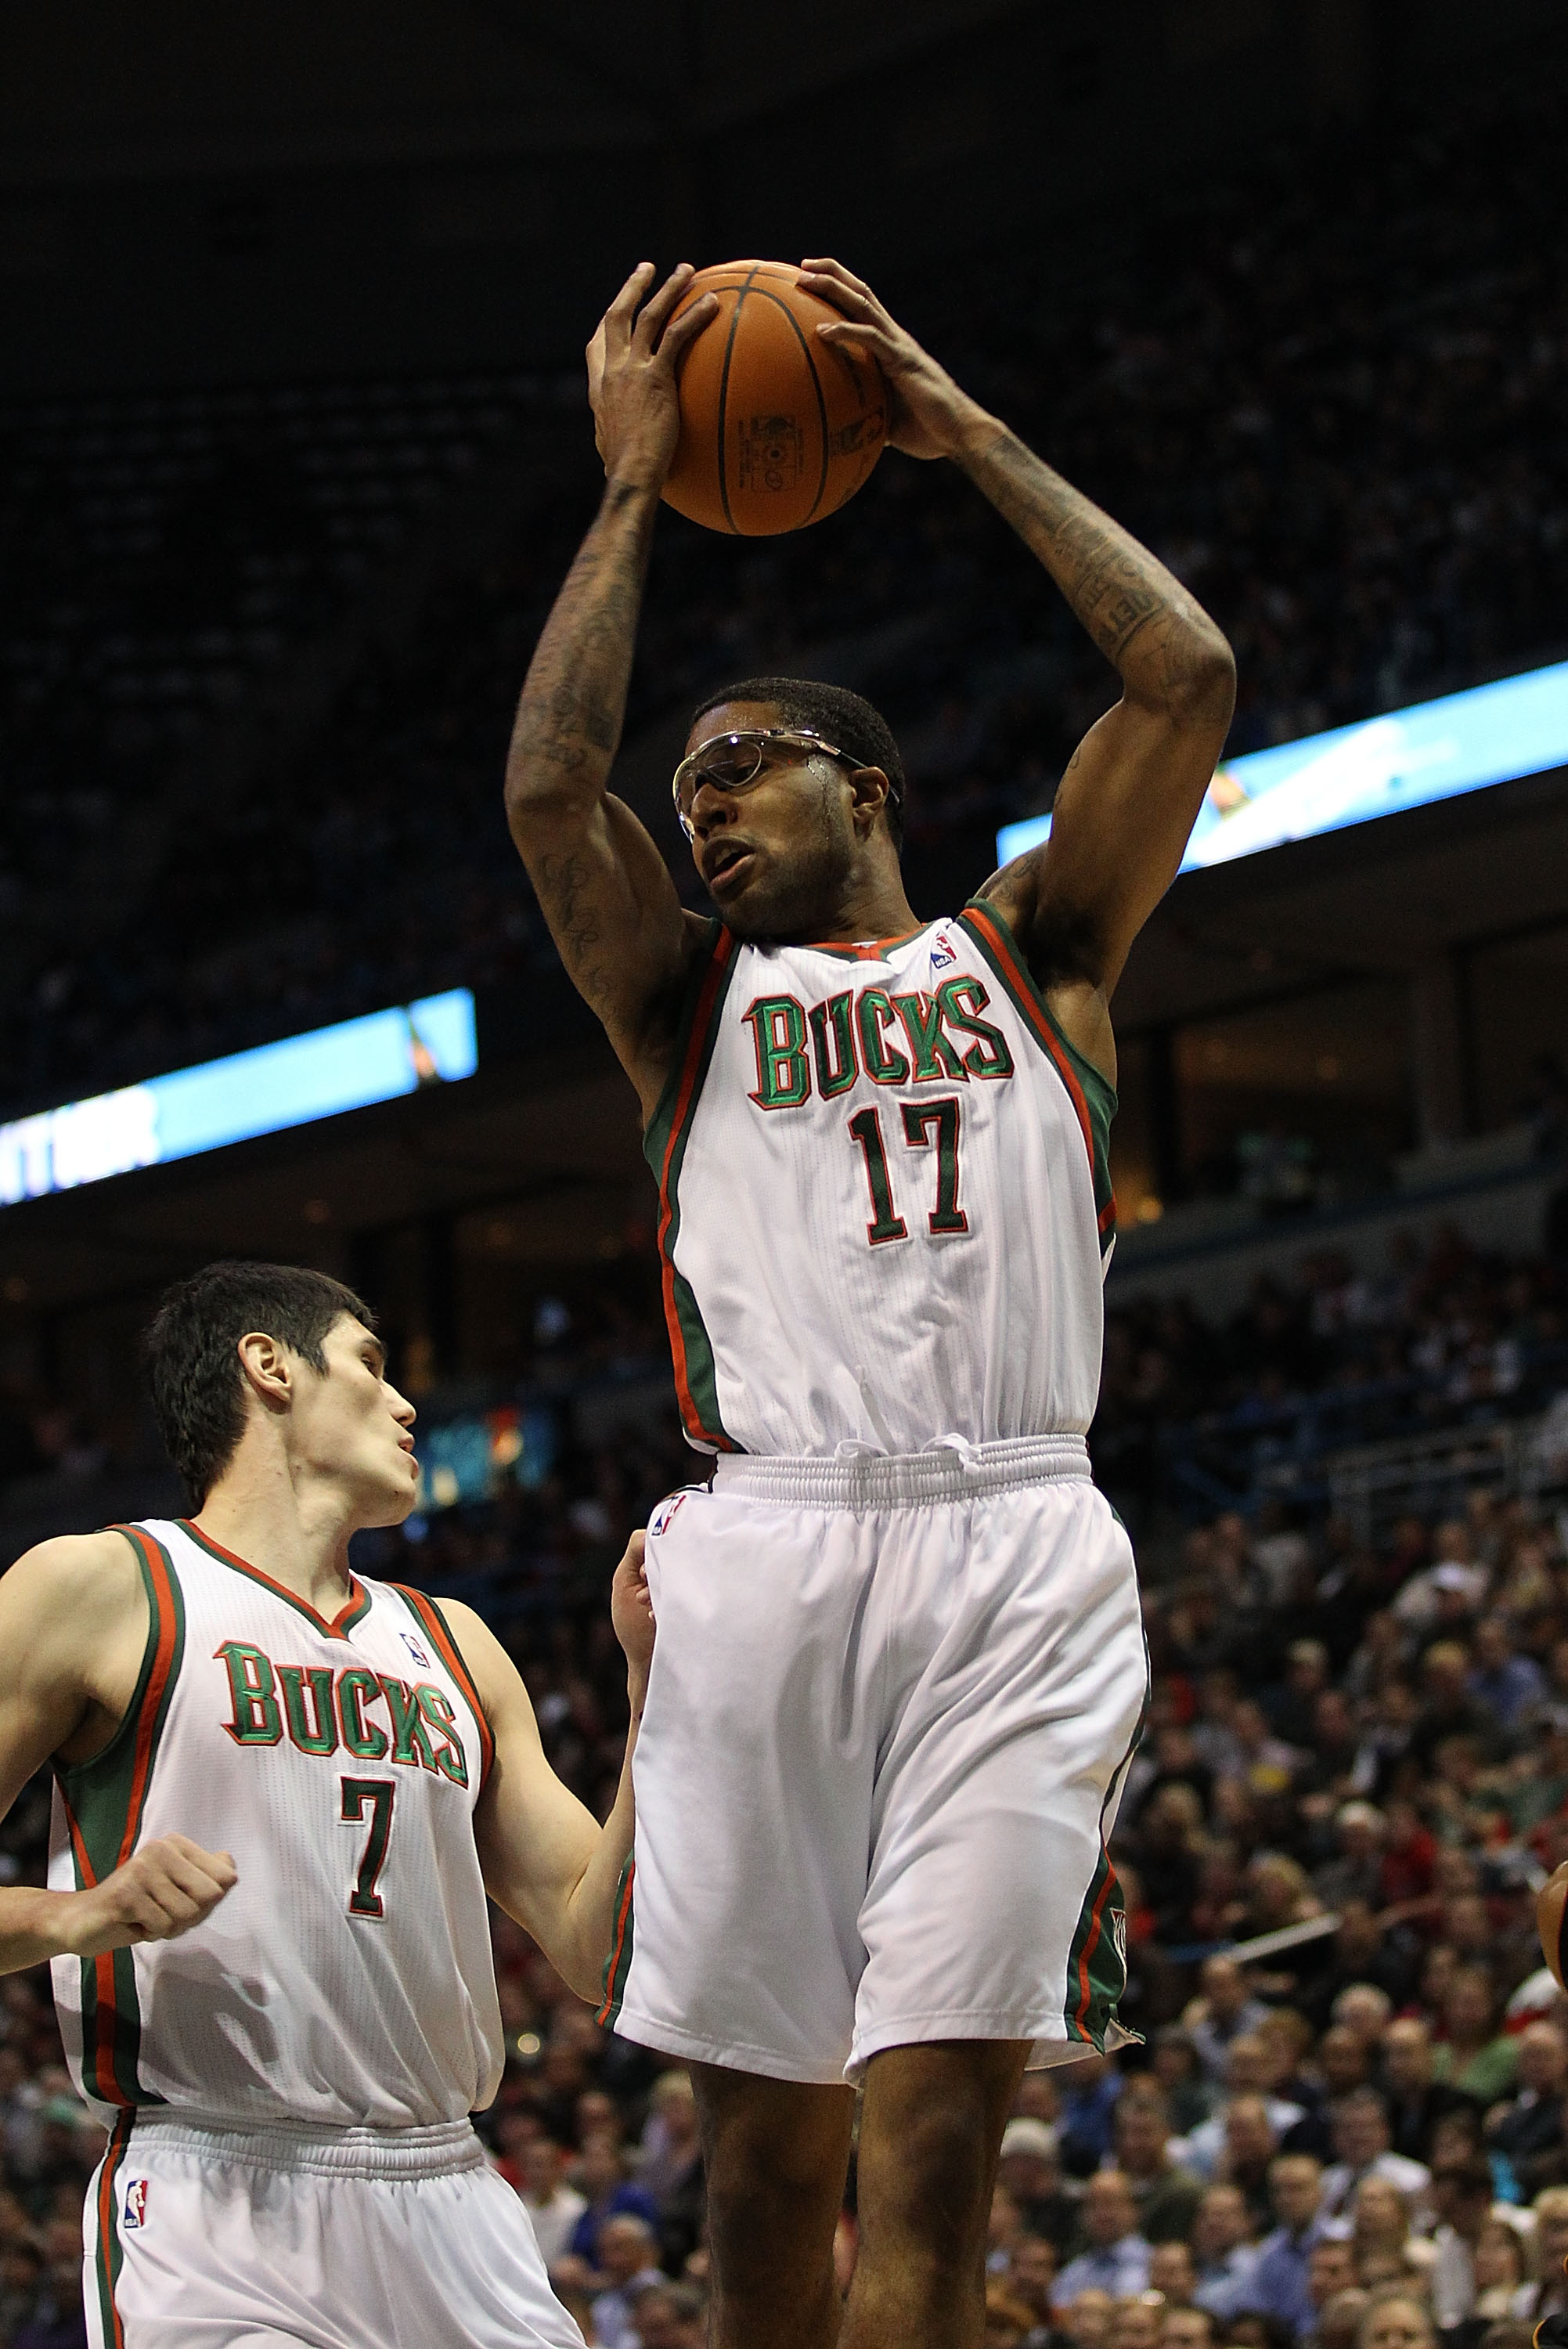 MILWAUKEE, WI - DECEMBER 06: Chris Douglas-Roberts #17 of the Milwaukee Bucks grabs a rebound over teammate Ersan Ilyasova #7 against the Miami Heat at the Bradley Center on December 6, 2010 in Milwaukee, Wisconsin. The Heat defeated the Bucks 88-78. NOTE